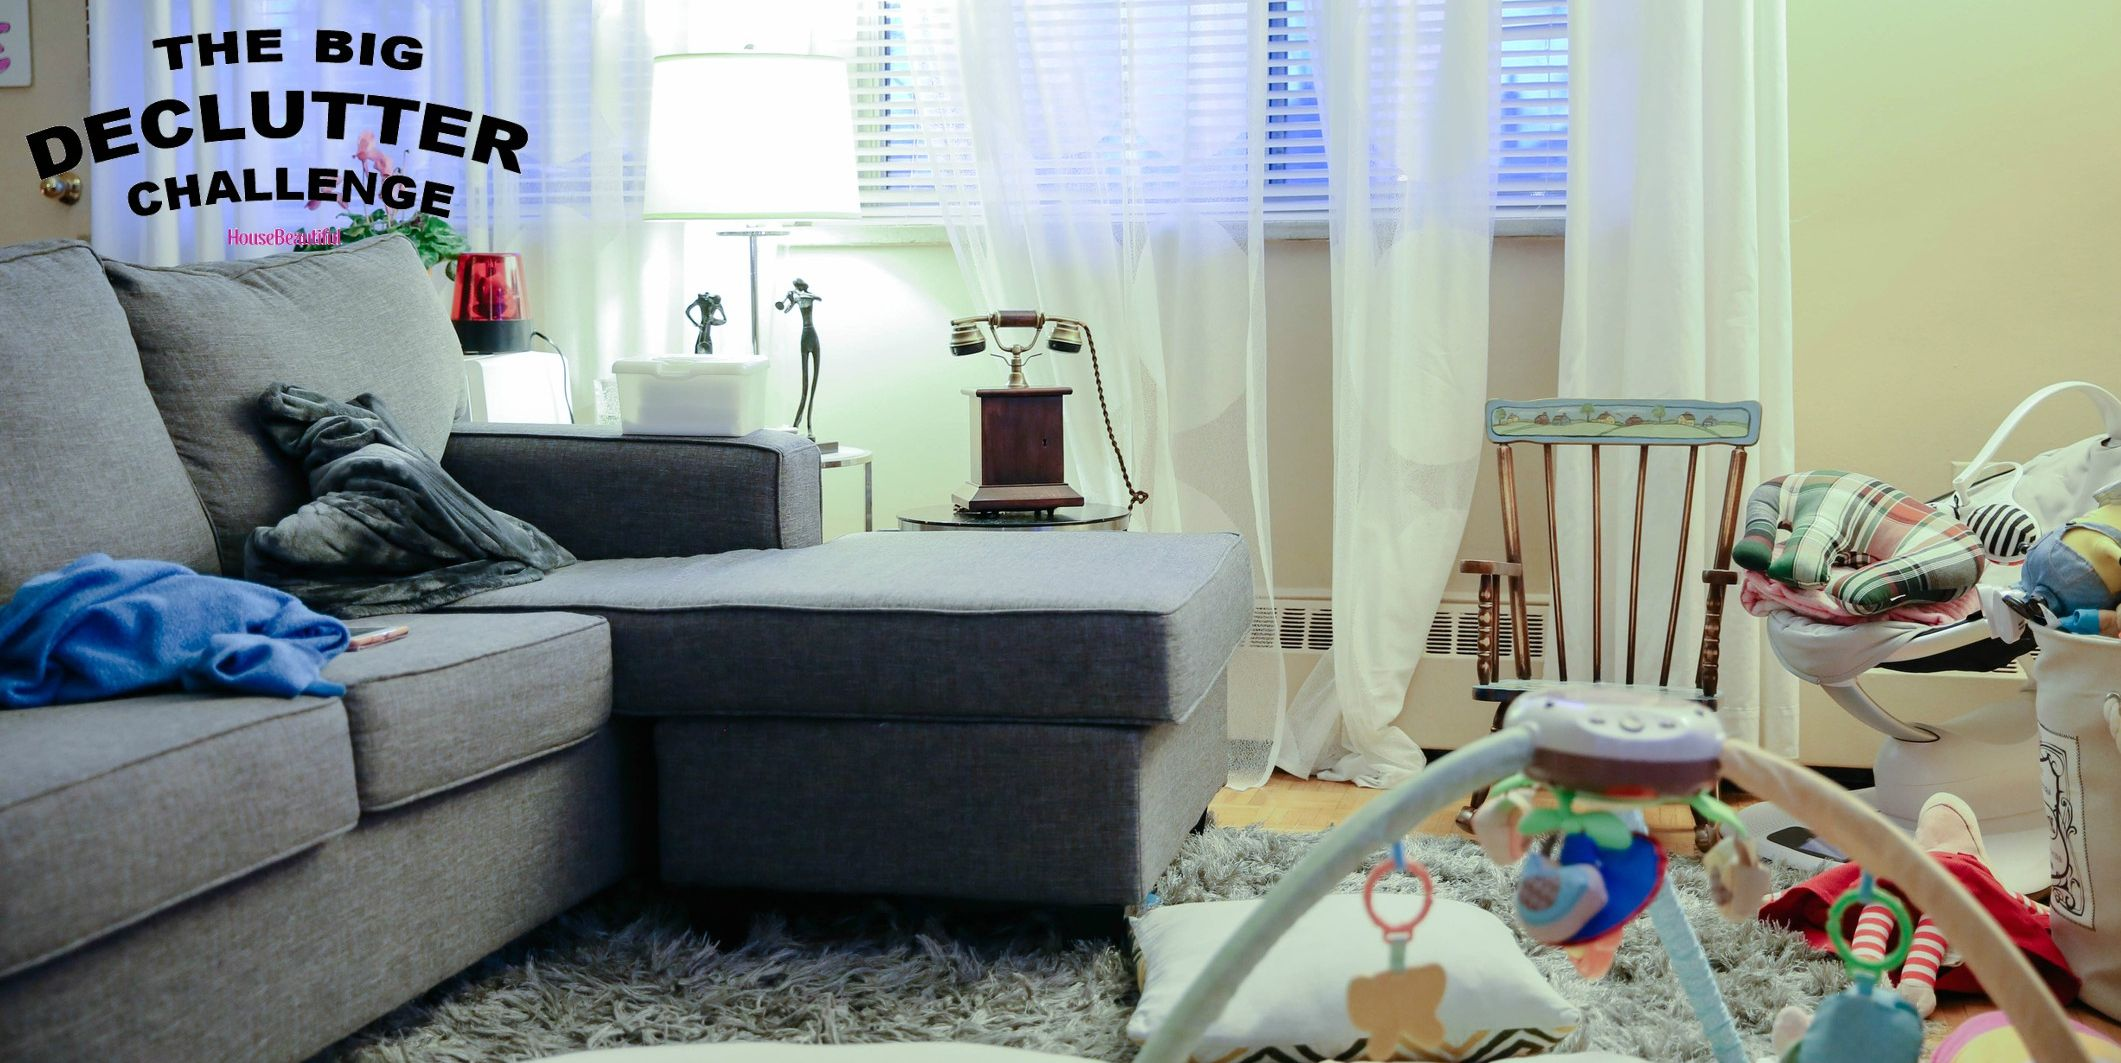 Living room with blankets and kids toys